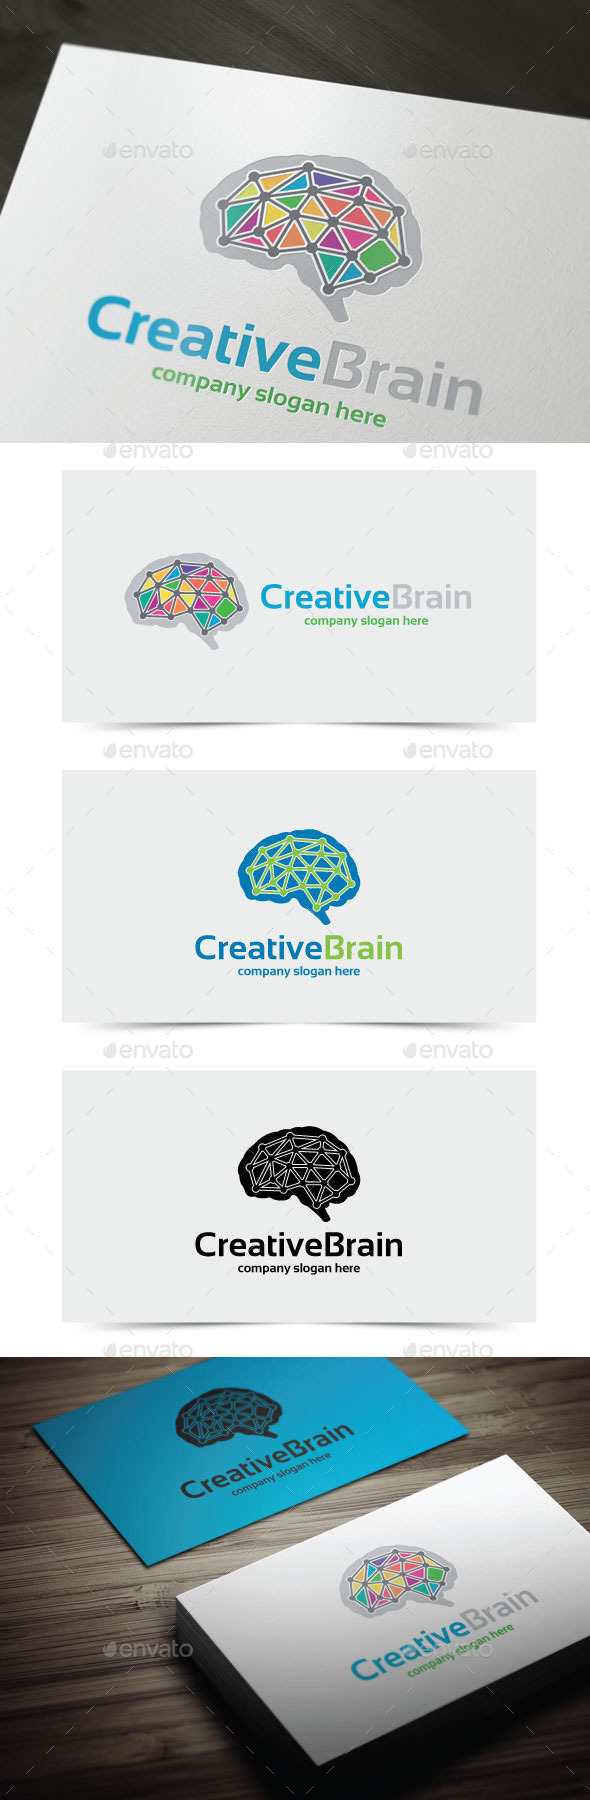 GraphicRiver Creative Brain 10986472